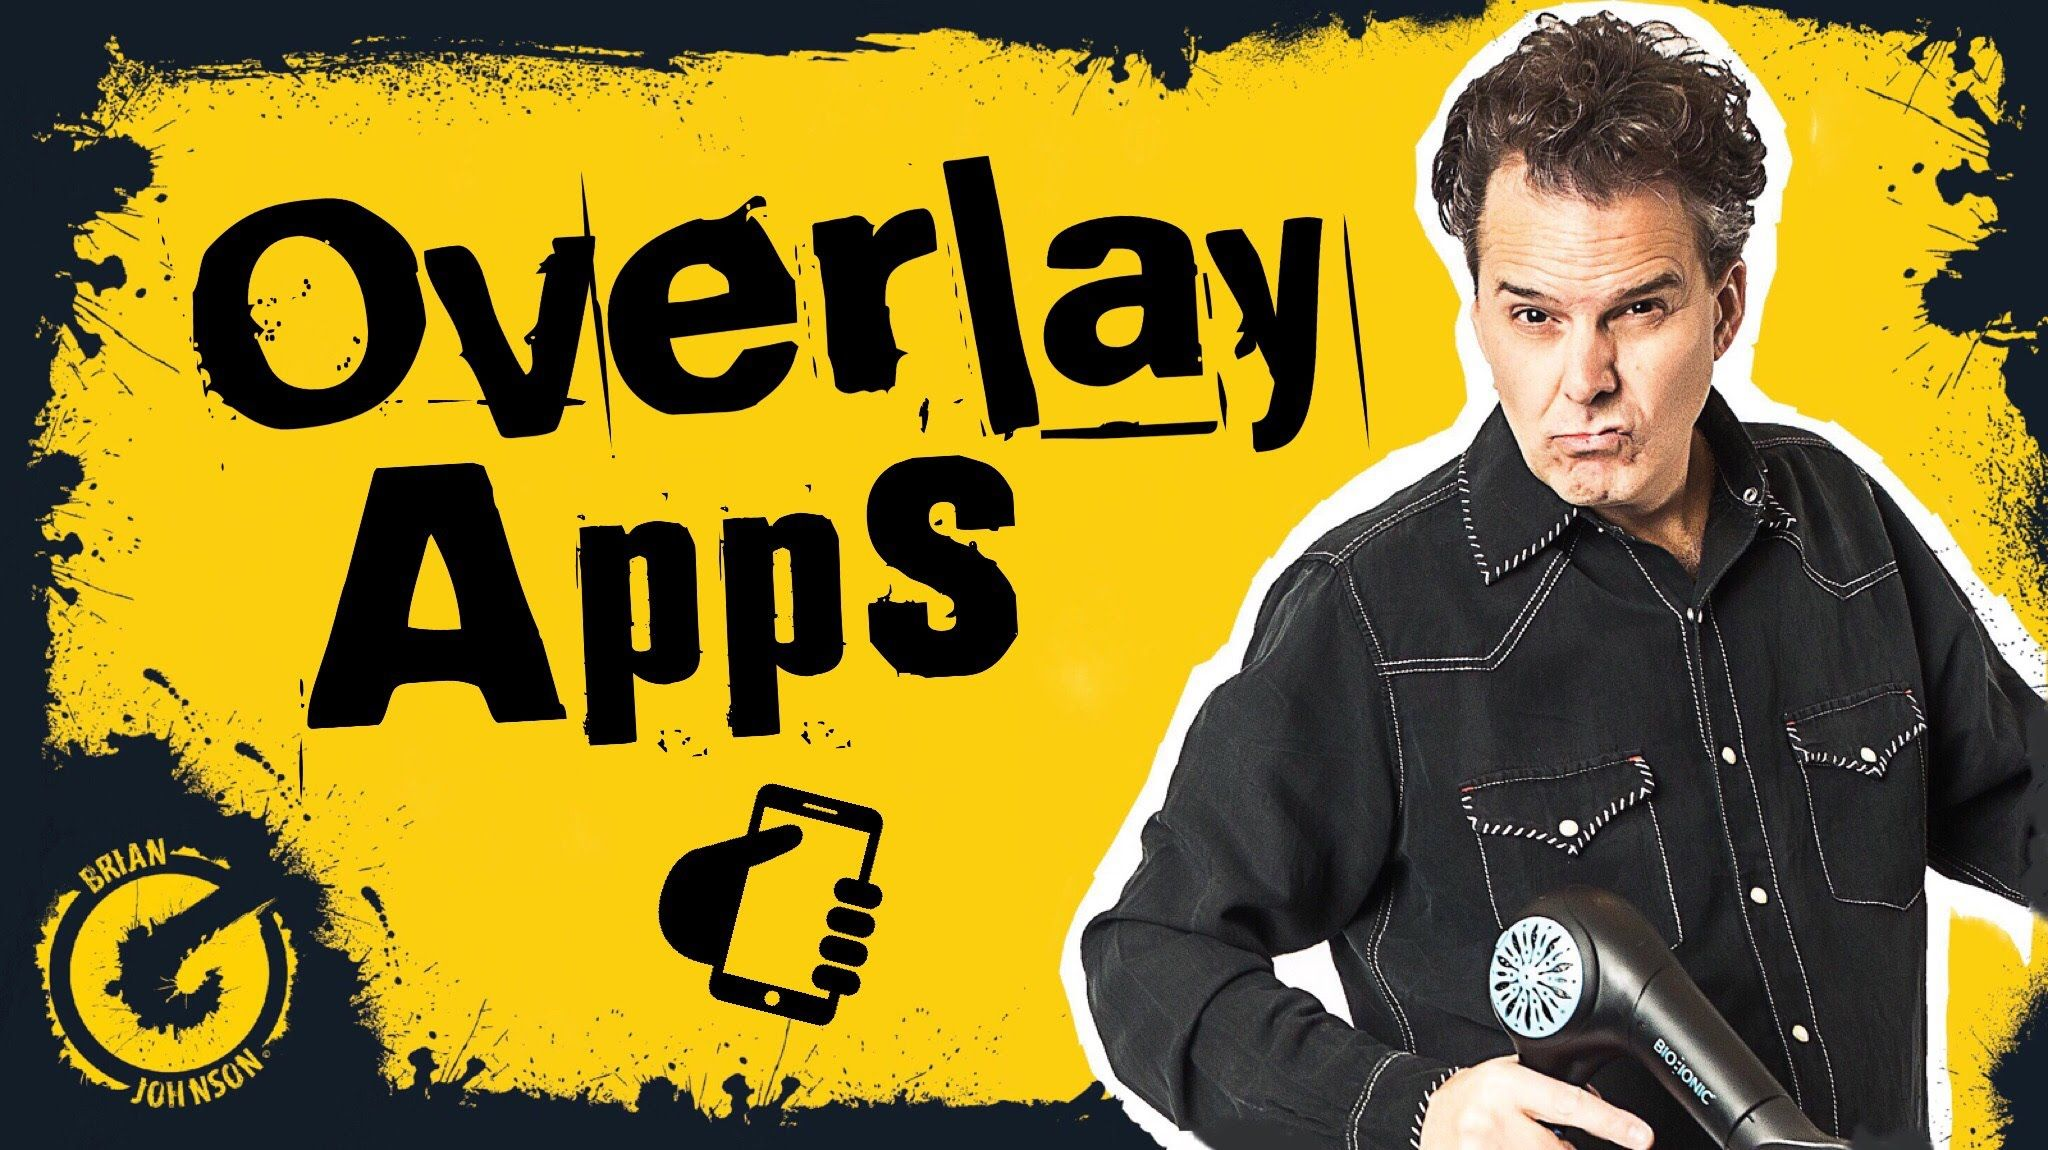 Video Overlay Apps Android & iOS Video Overlay App